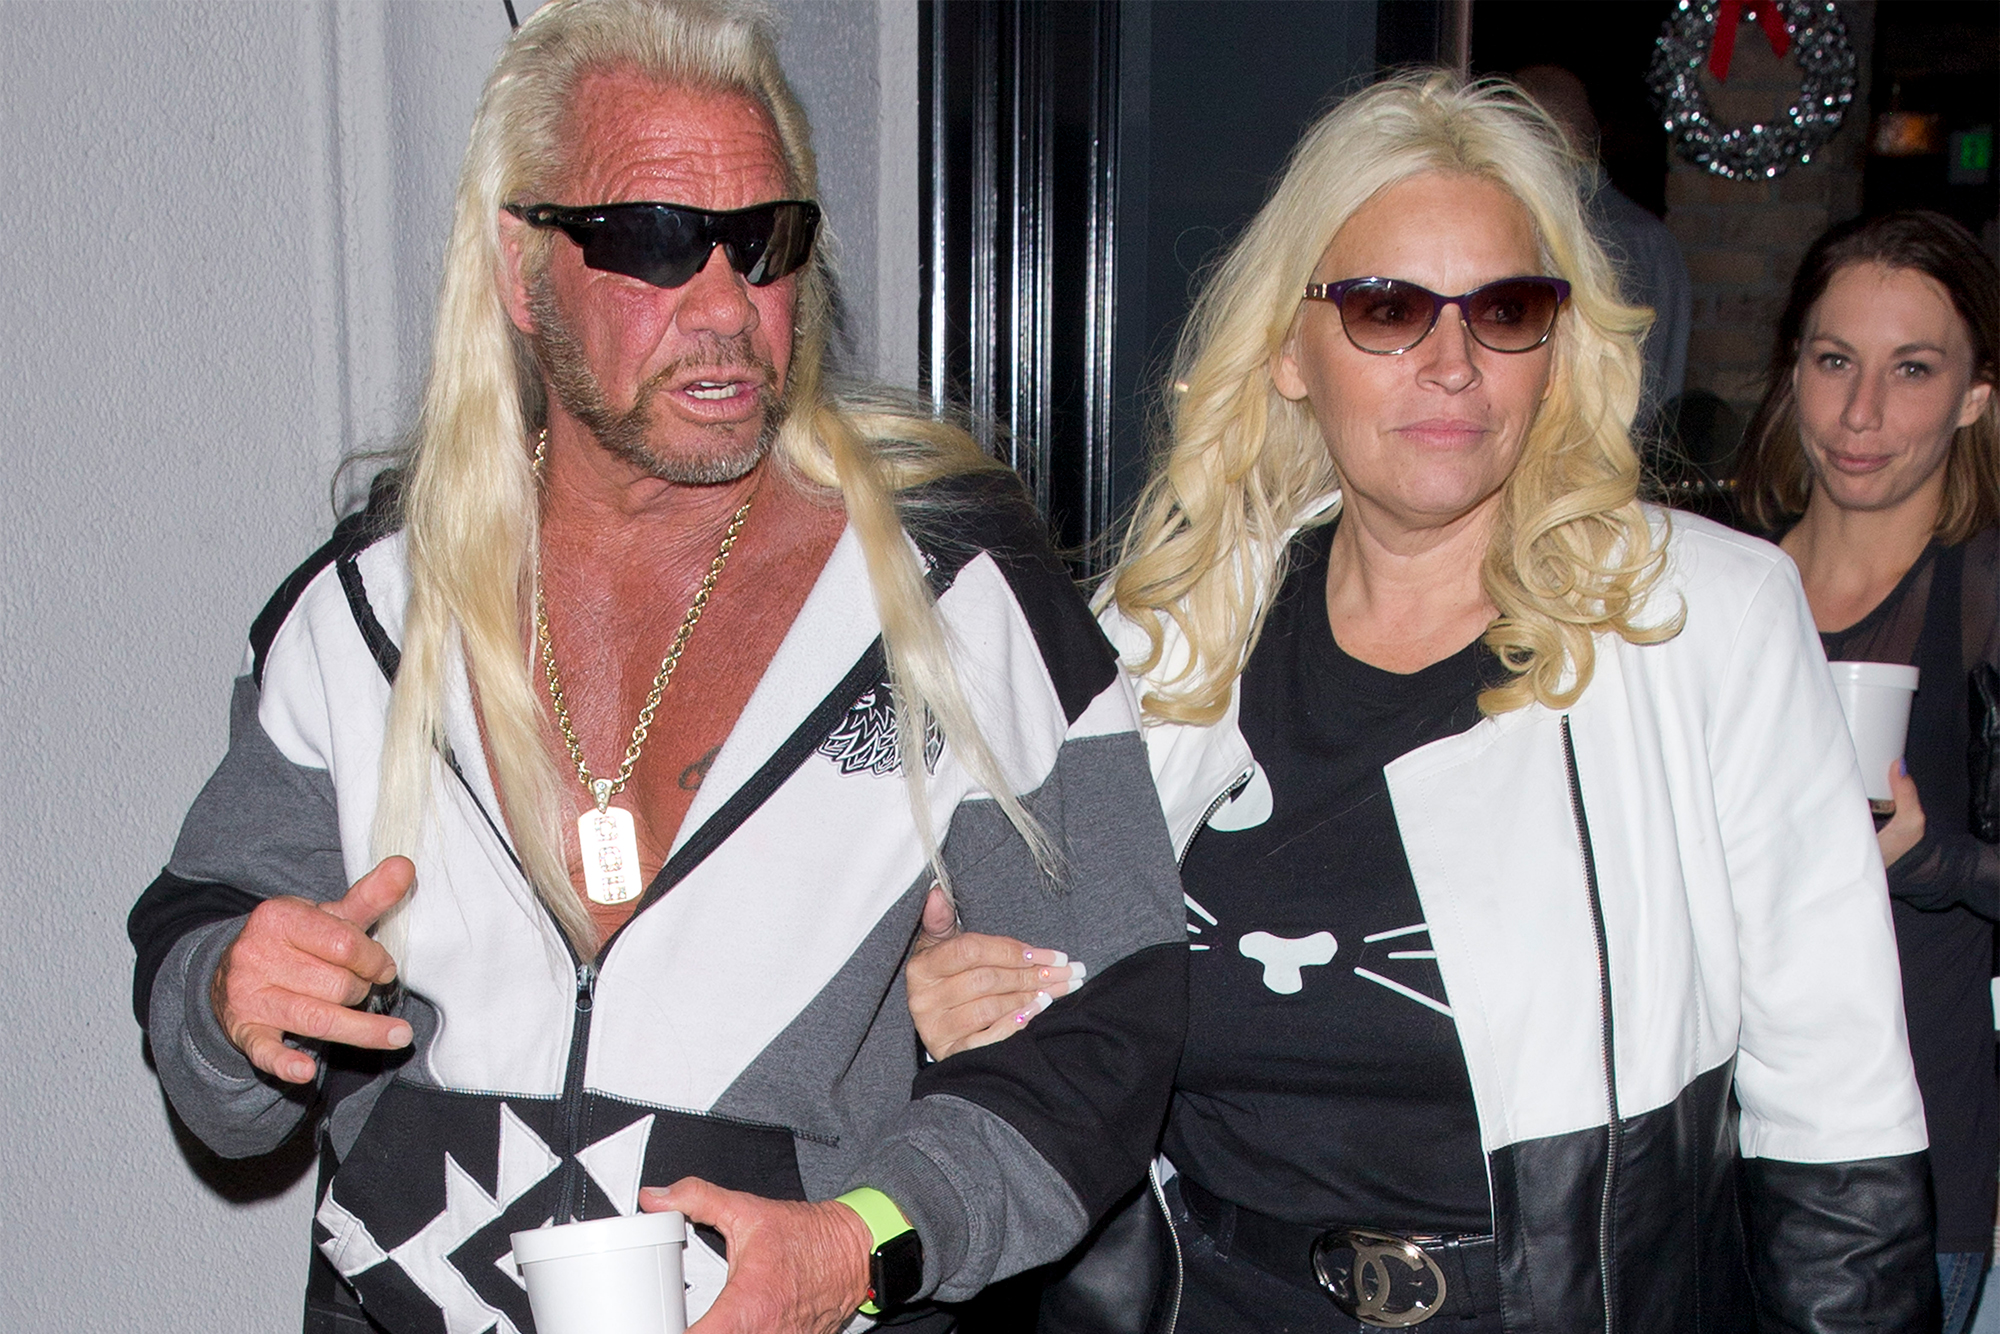 Dog The Bounty Hunter Star Beth Rushed Into Emergency Surgery